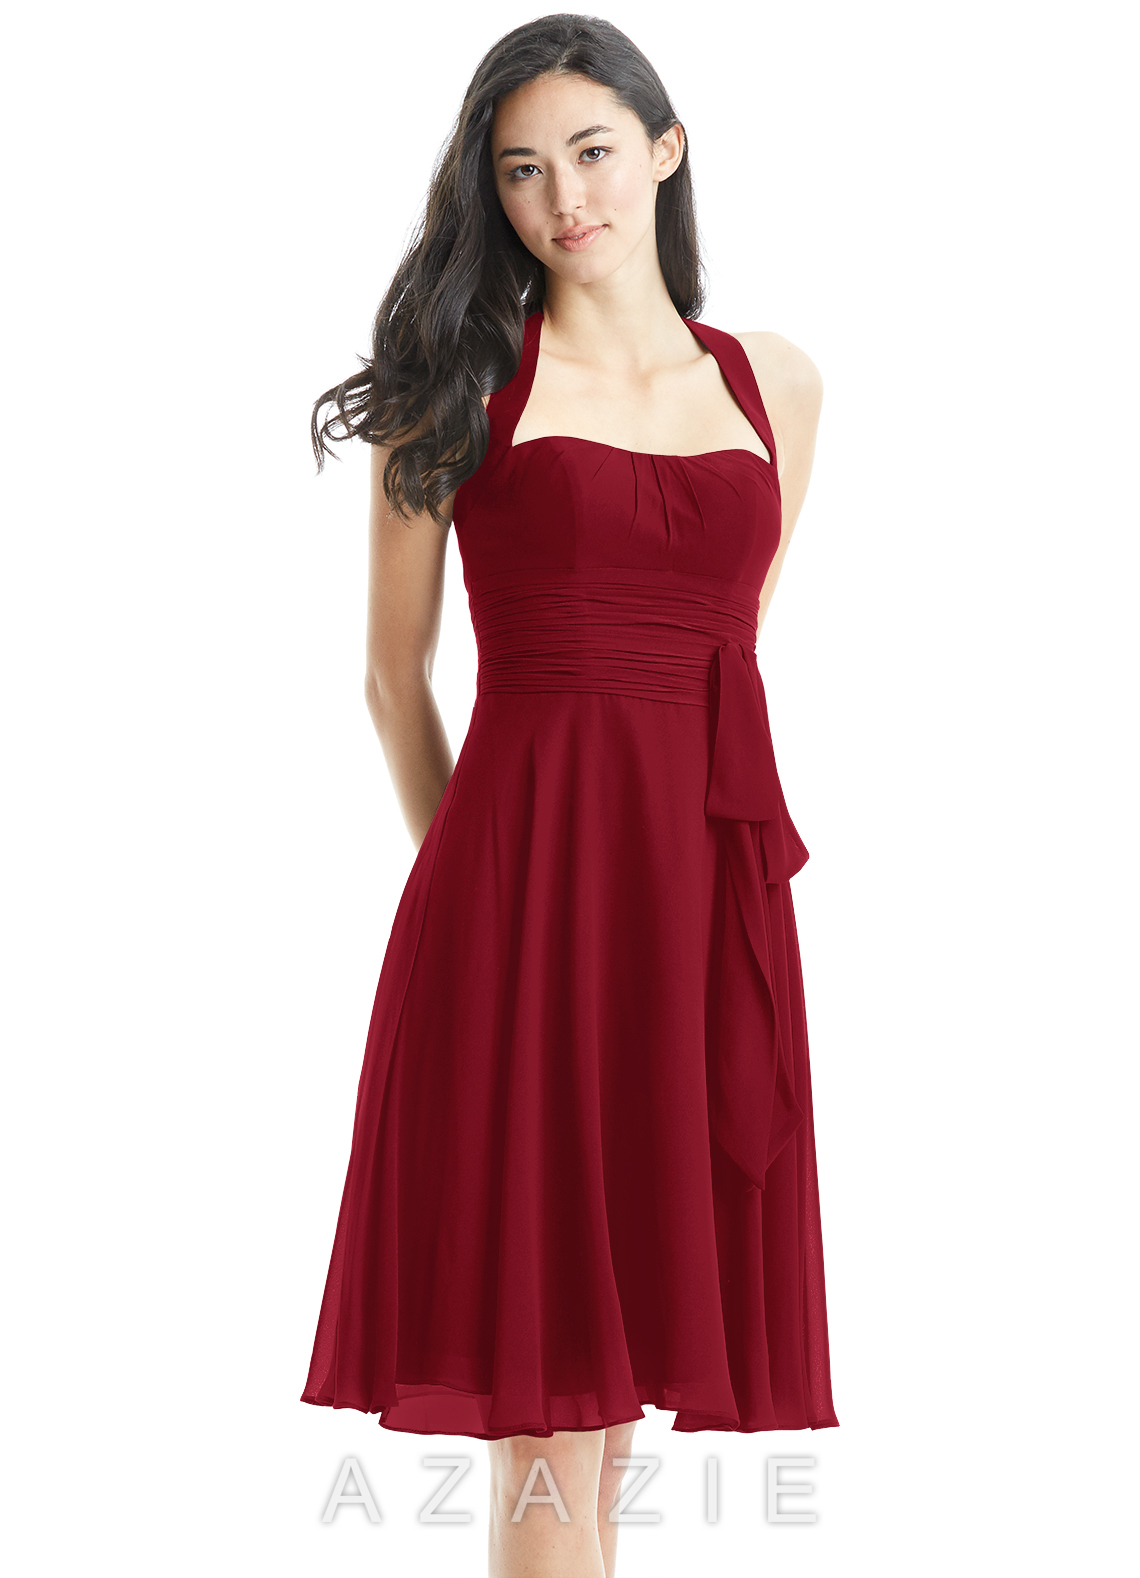 4fc58b7c872 Azazie Haley Clearance Bridesmaid Dress